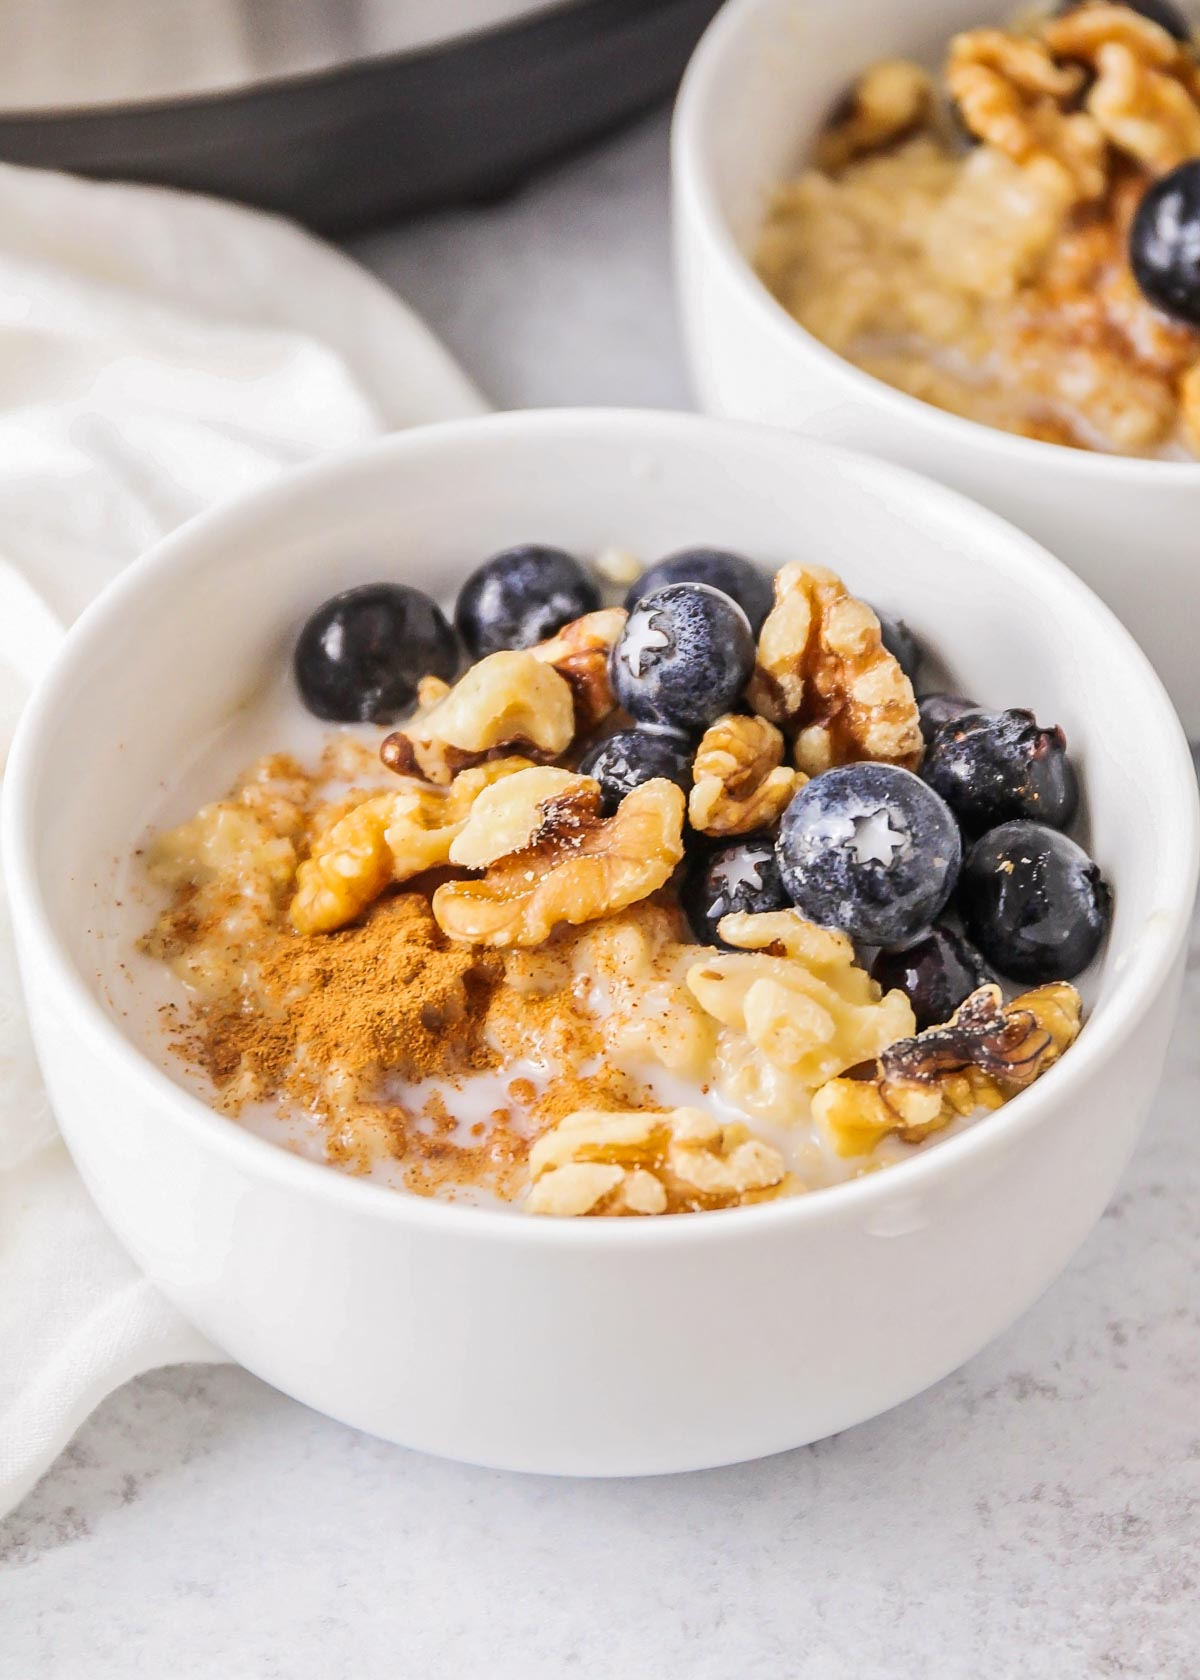 Instant pot oatmeal topped with blueberries and walnuts